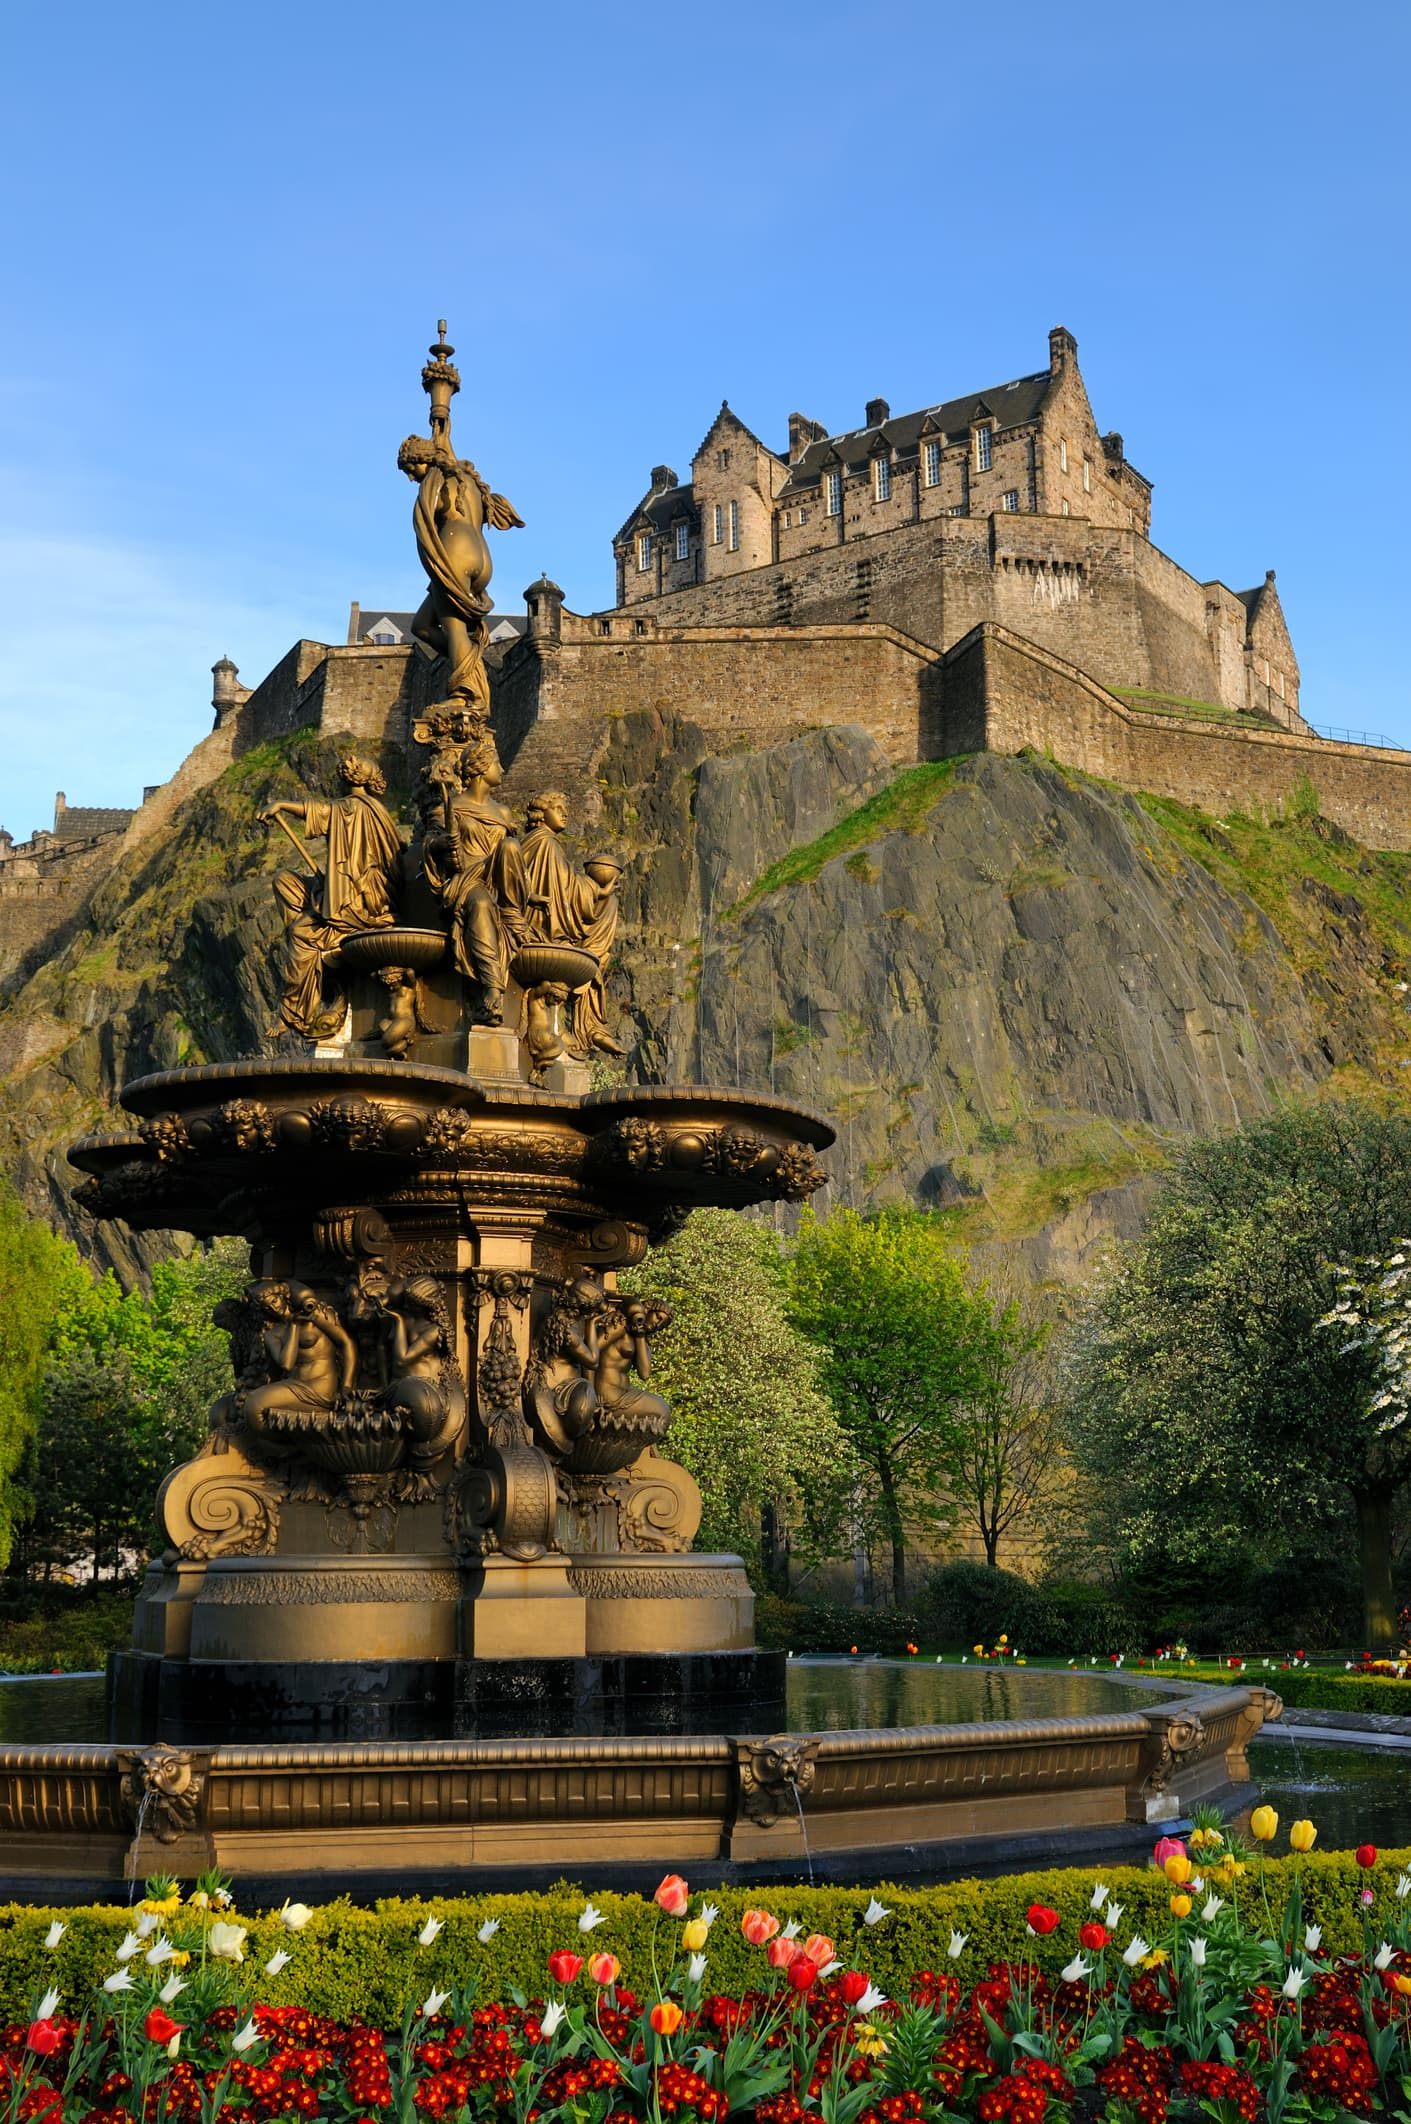 A view of the iconic Edinburgh Castle, looking up from Princess Street gardens with the Ross fountain in the foreground. XL image size.